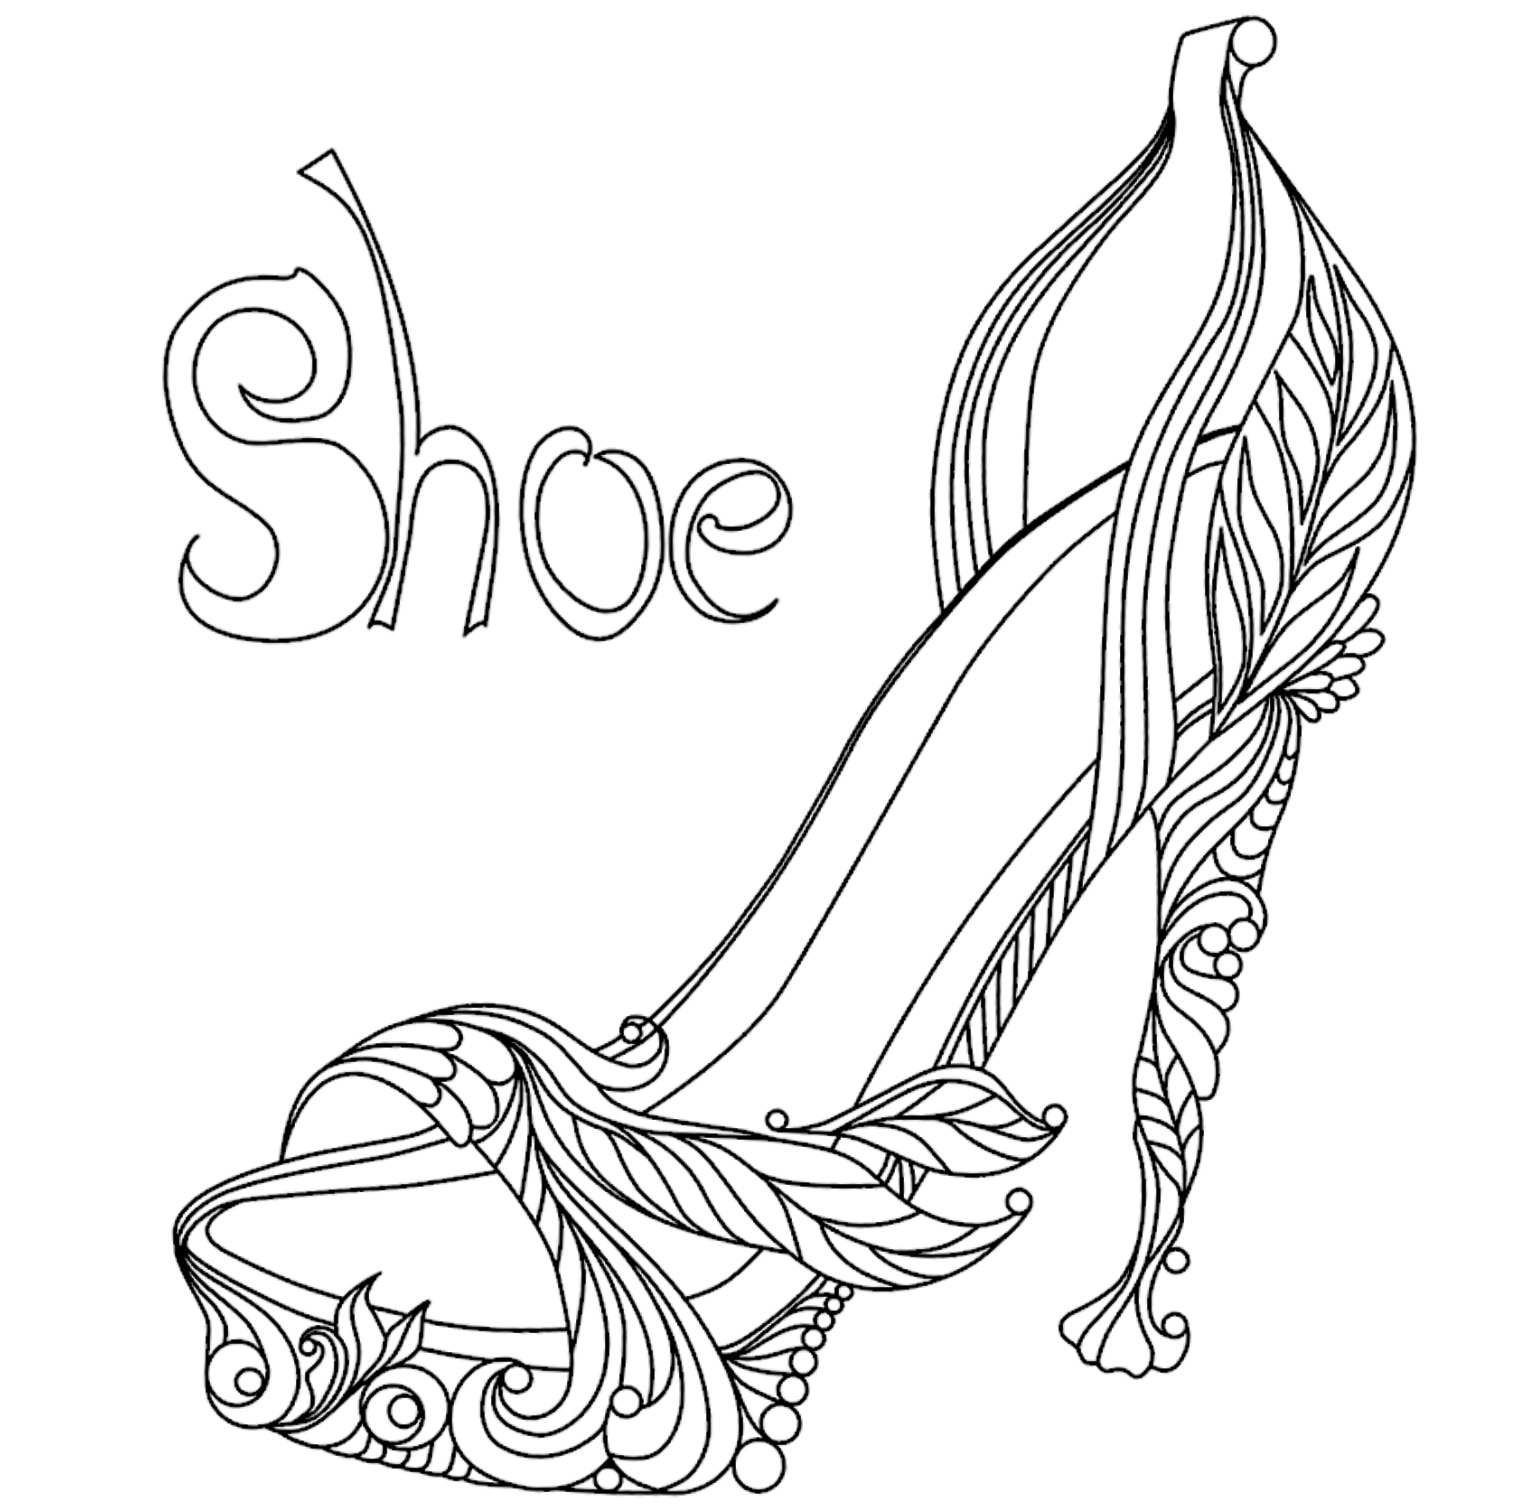 Dress Shoes Drawing at GetDrawings | Free download